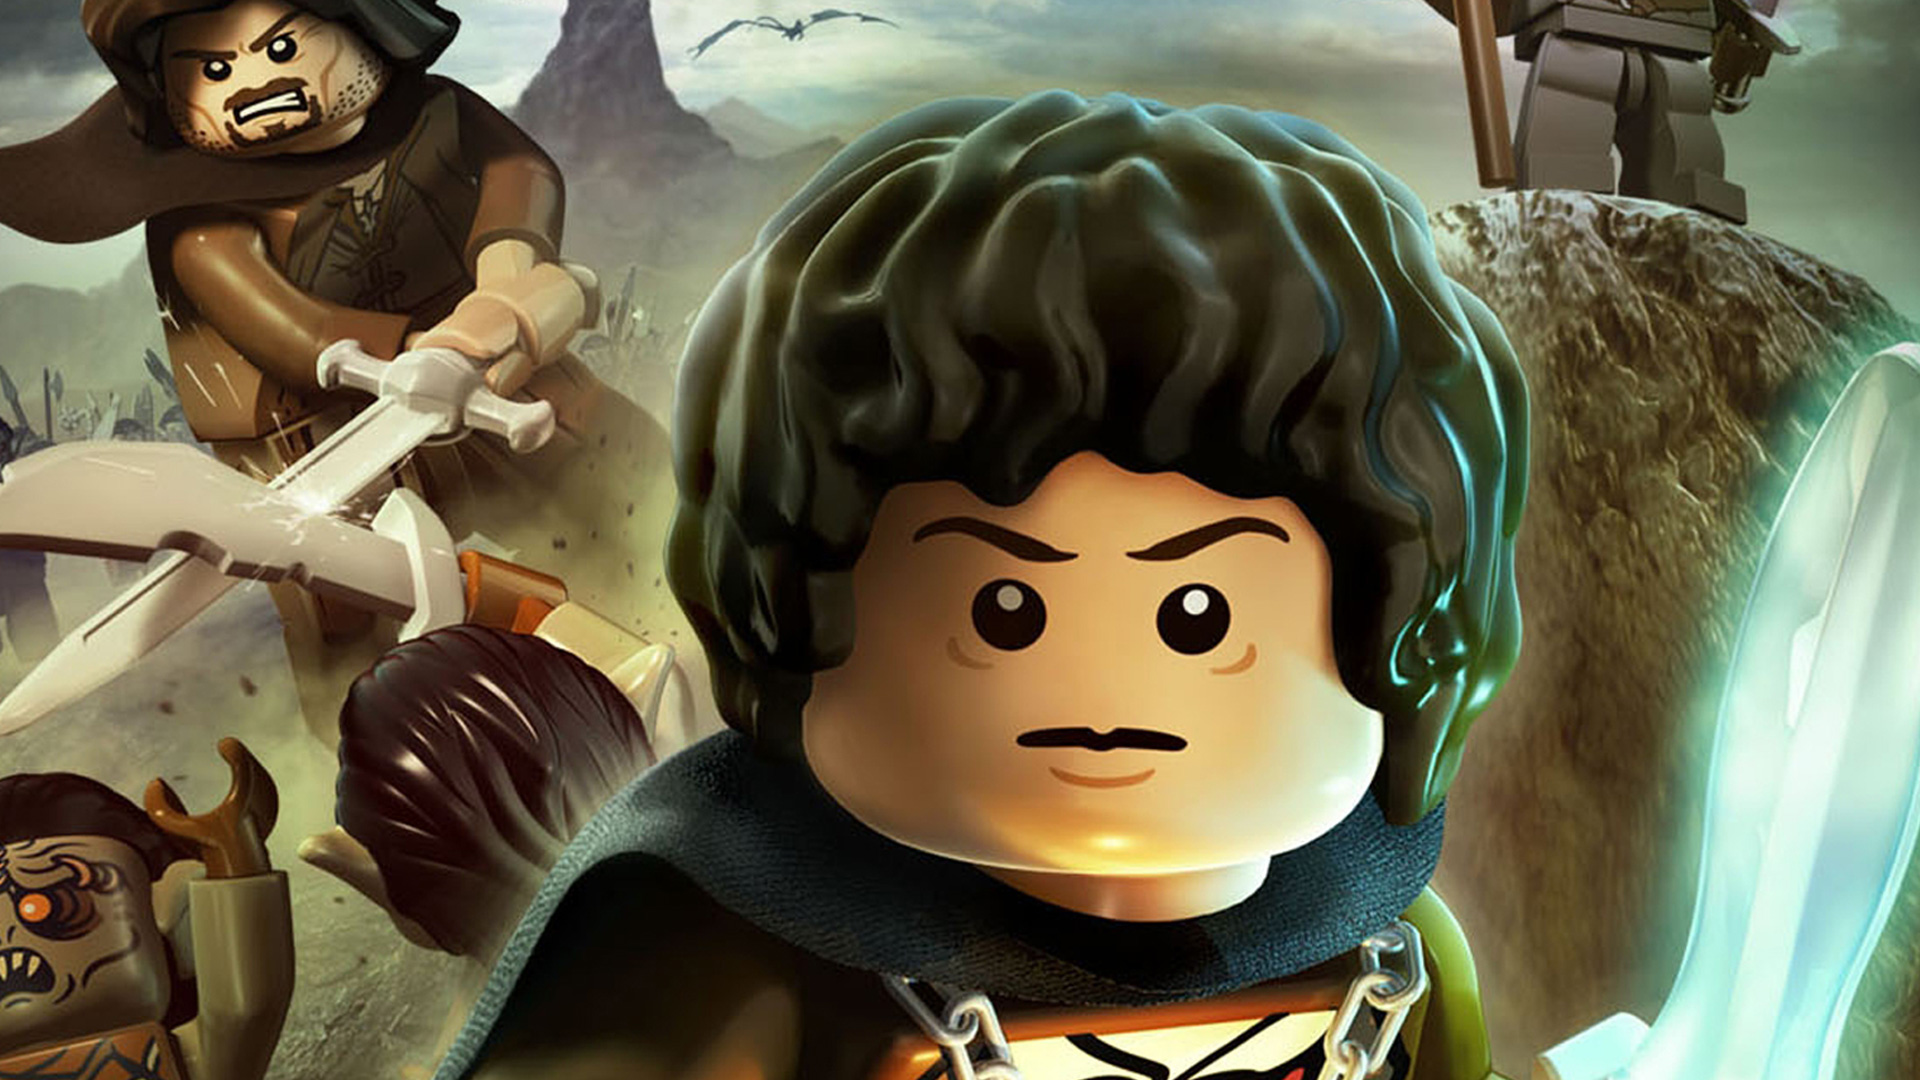 Lego The Lord of the Rings: The Video Game Wallpaper in 1920x1080